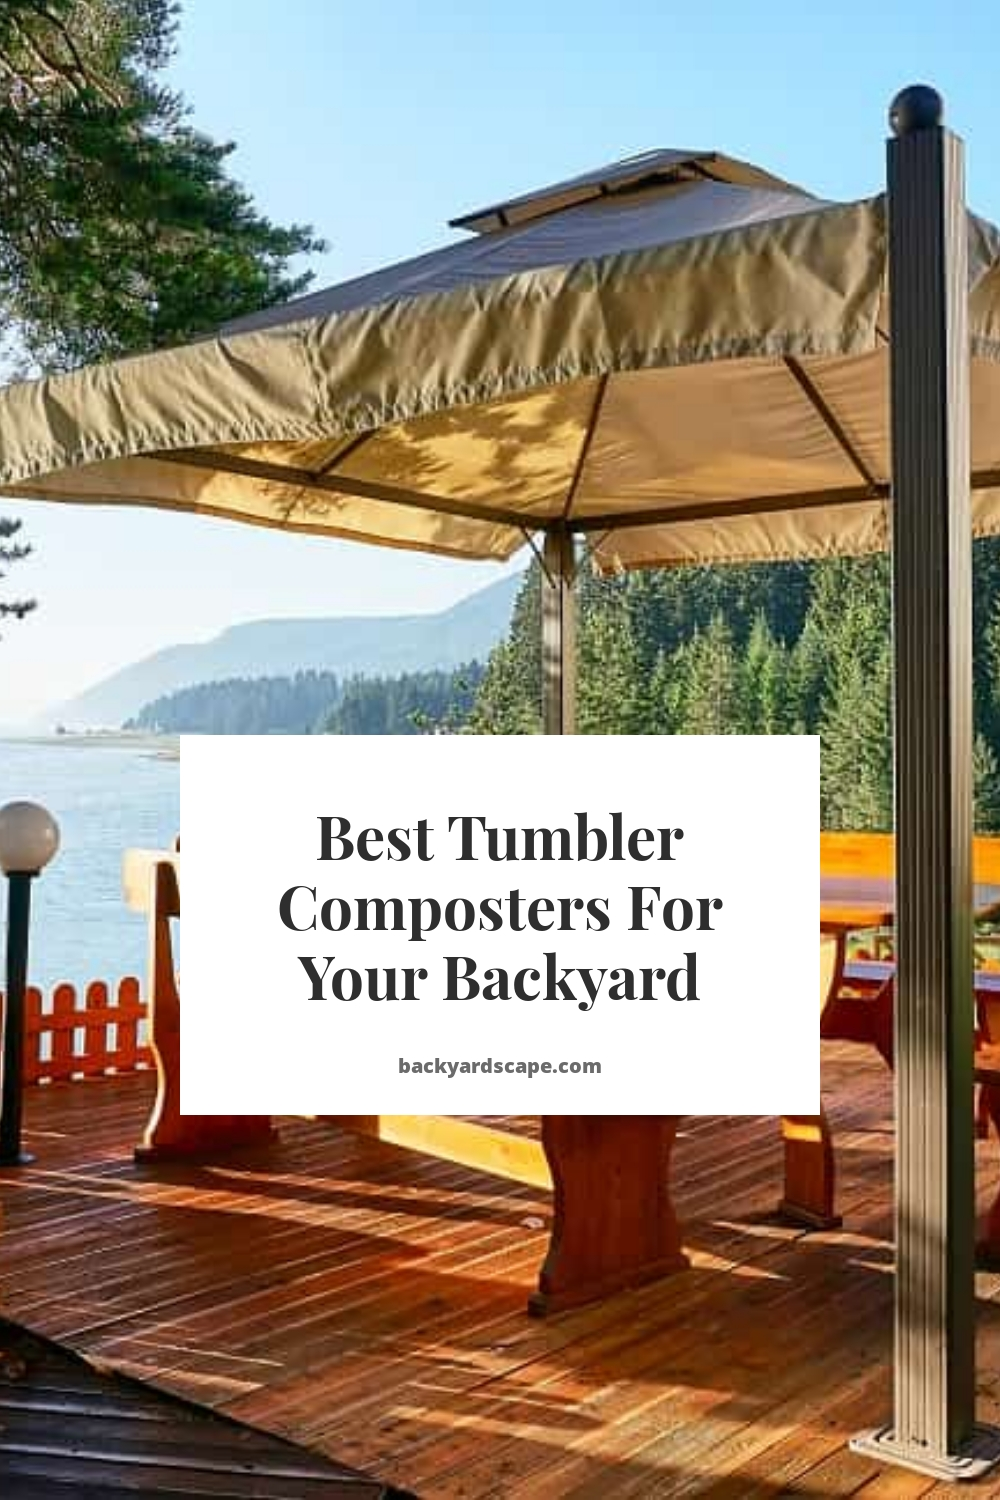 Best Tumbler Composters For Your Backyard